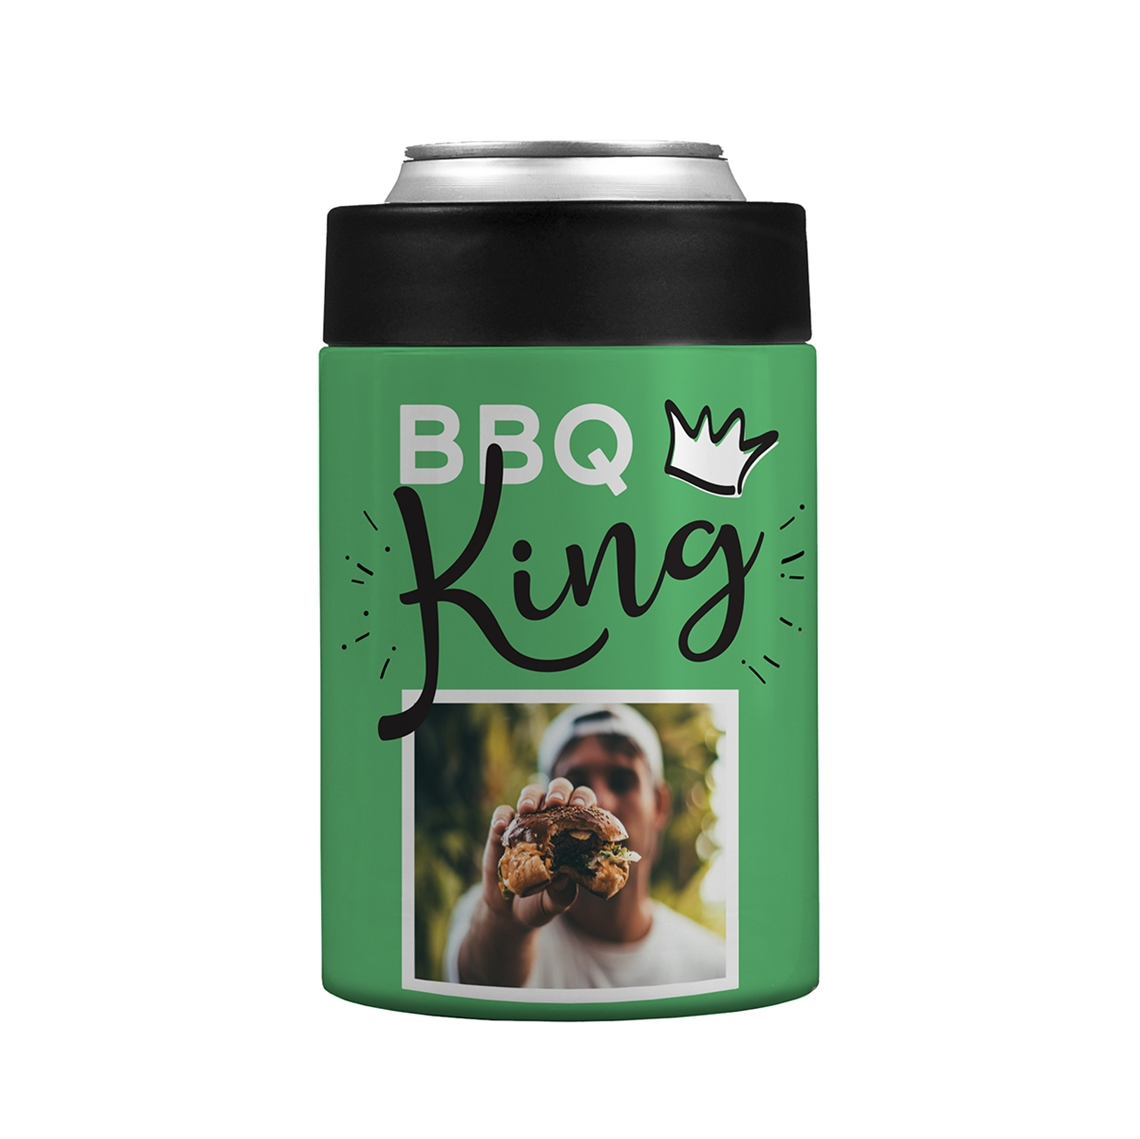 Picture of BBQ King Green Stainless Steel Koozie